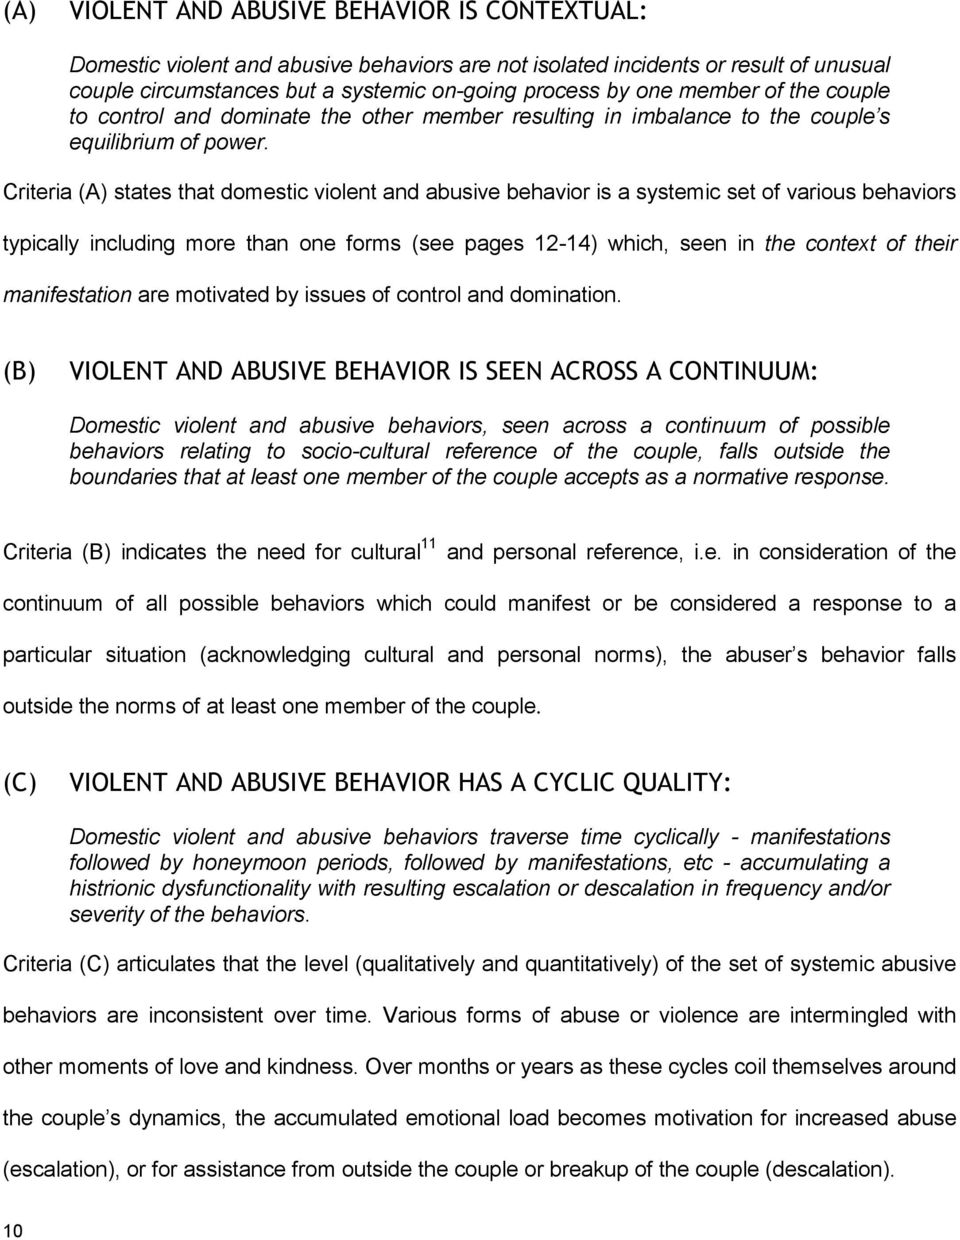 Criteria (A) states that domestic violent and abusive behavior is a systemic set of various behaviors typically including more than one forms (see pages 12-14) which, seen in the context of their